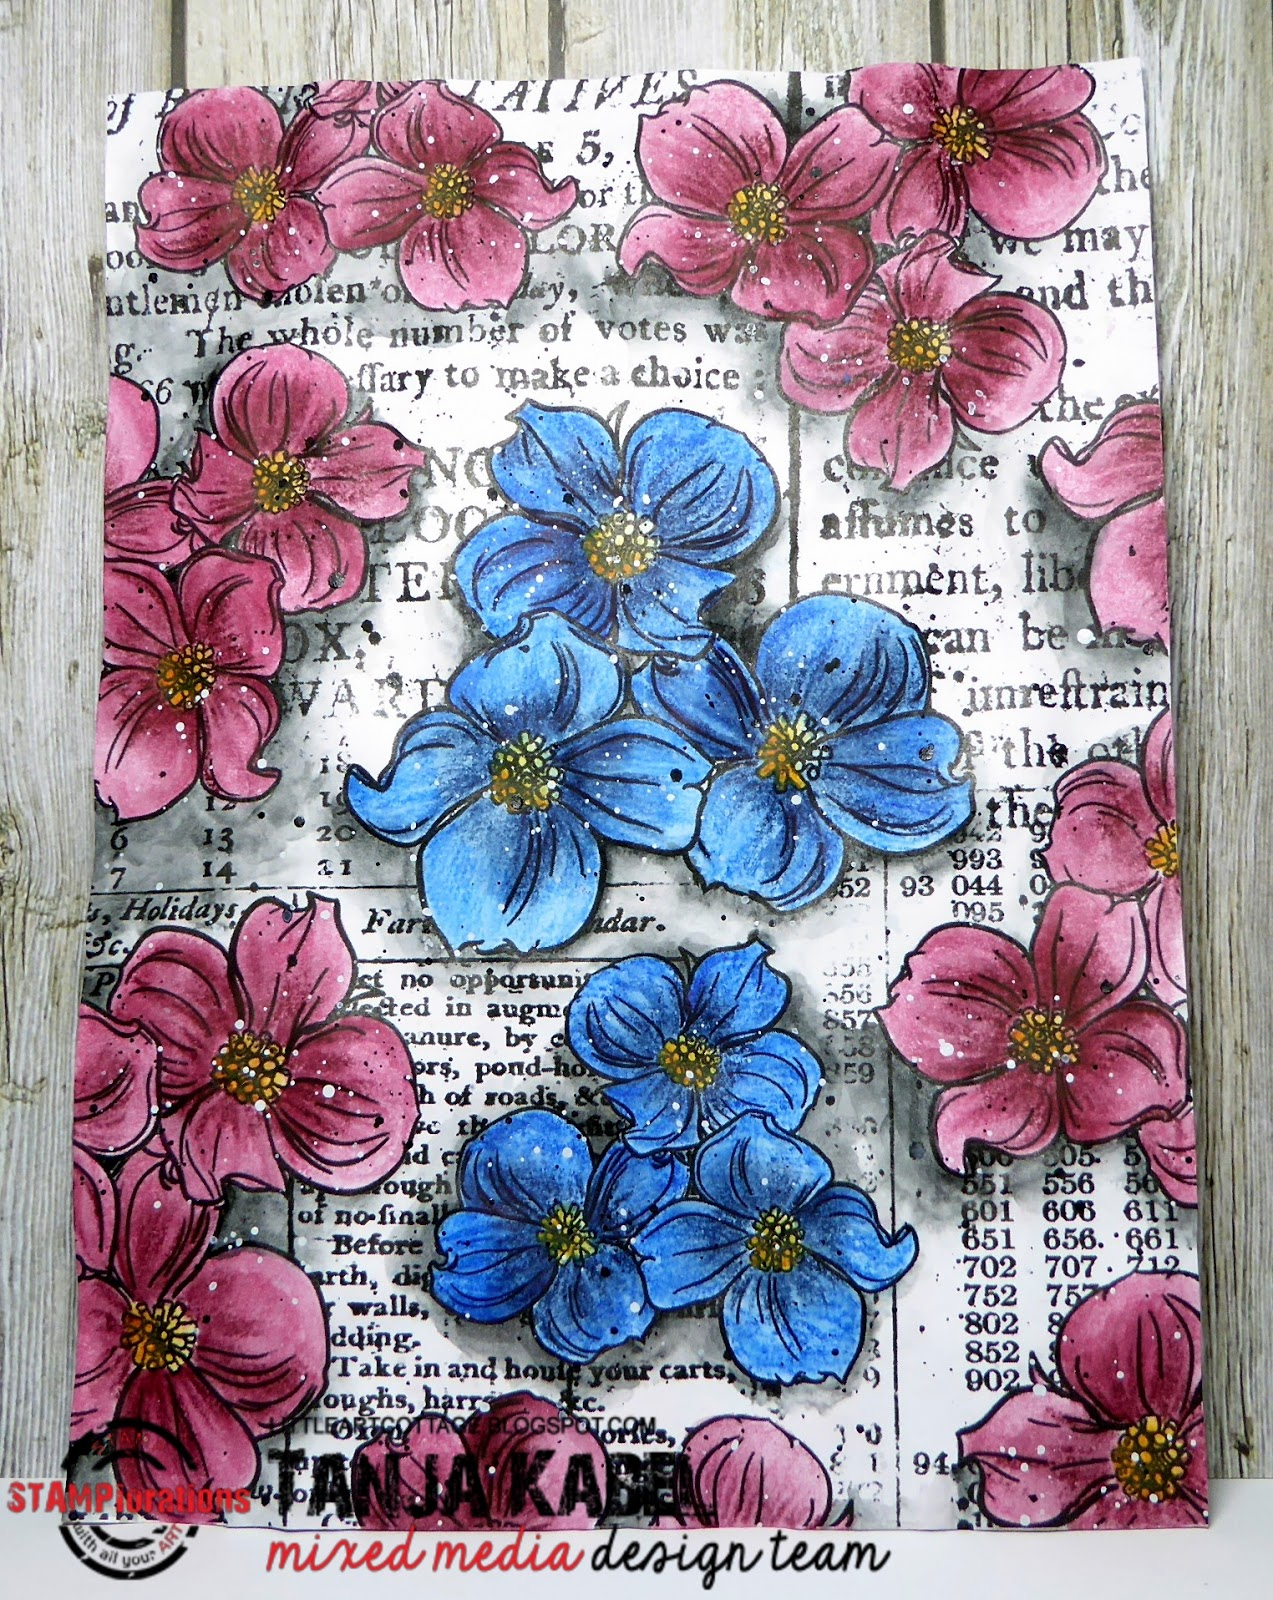 Cut Out A Page From The STAMPlorations Color Blooms Coloring Book Flowers With Inktense Pencils